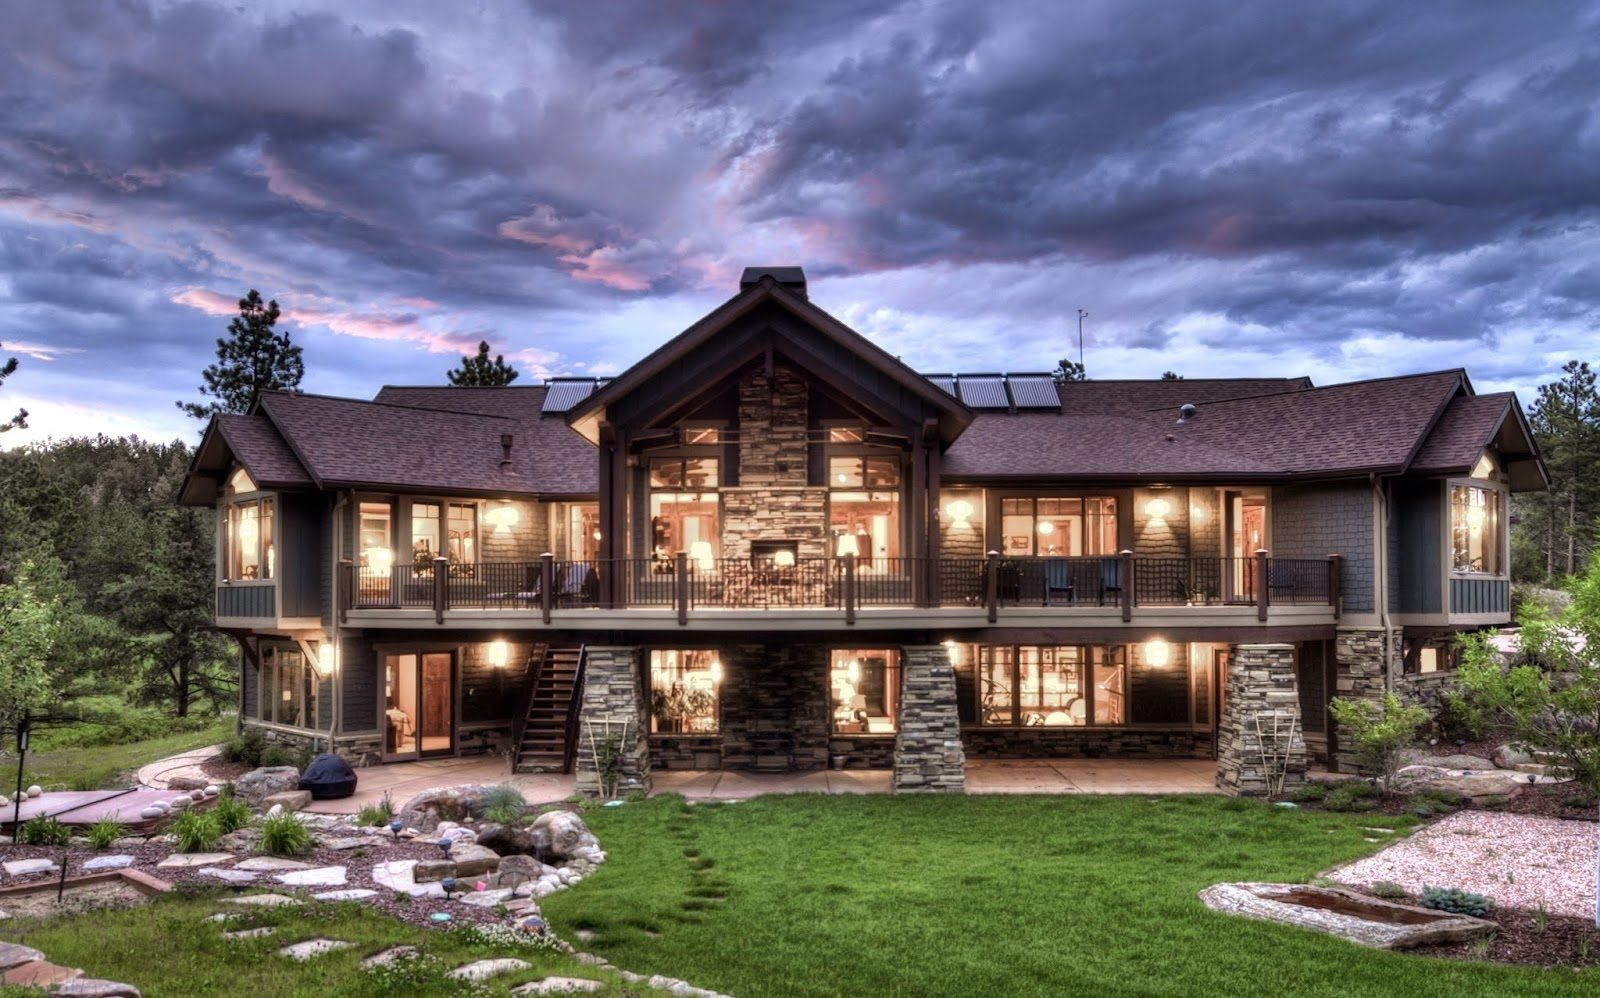 Mountain View House Plans With Walkout Basement Craftsman Style House Plans Ranch Style House Plans Mountain House Plans